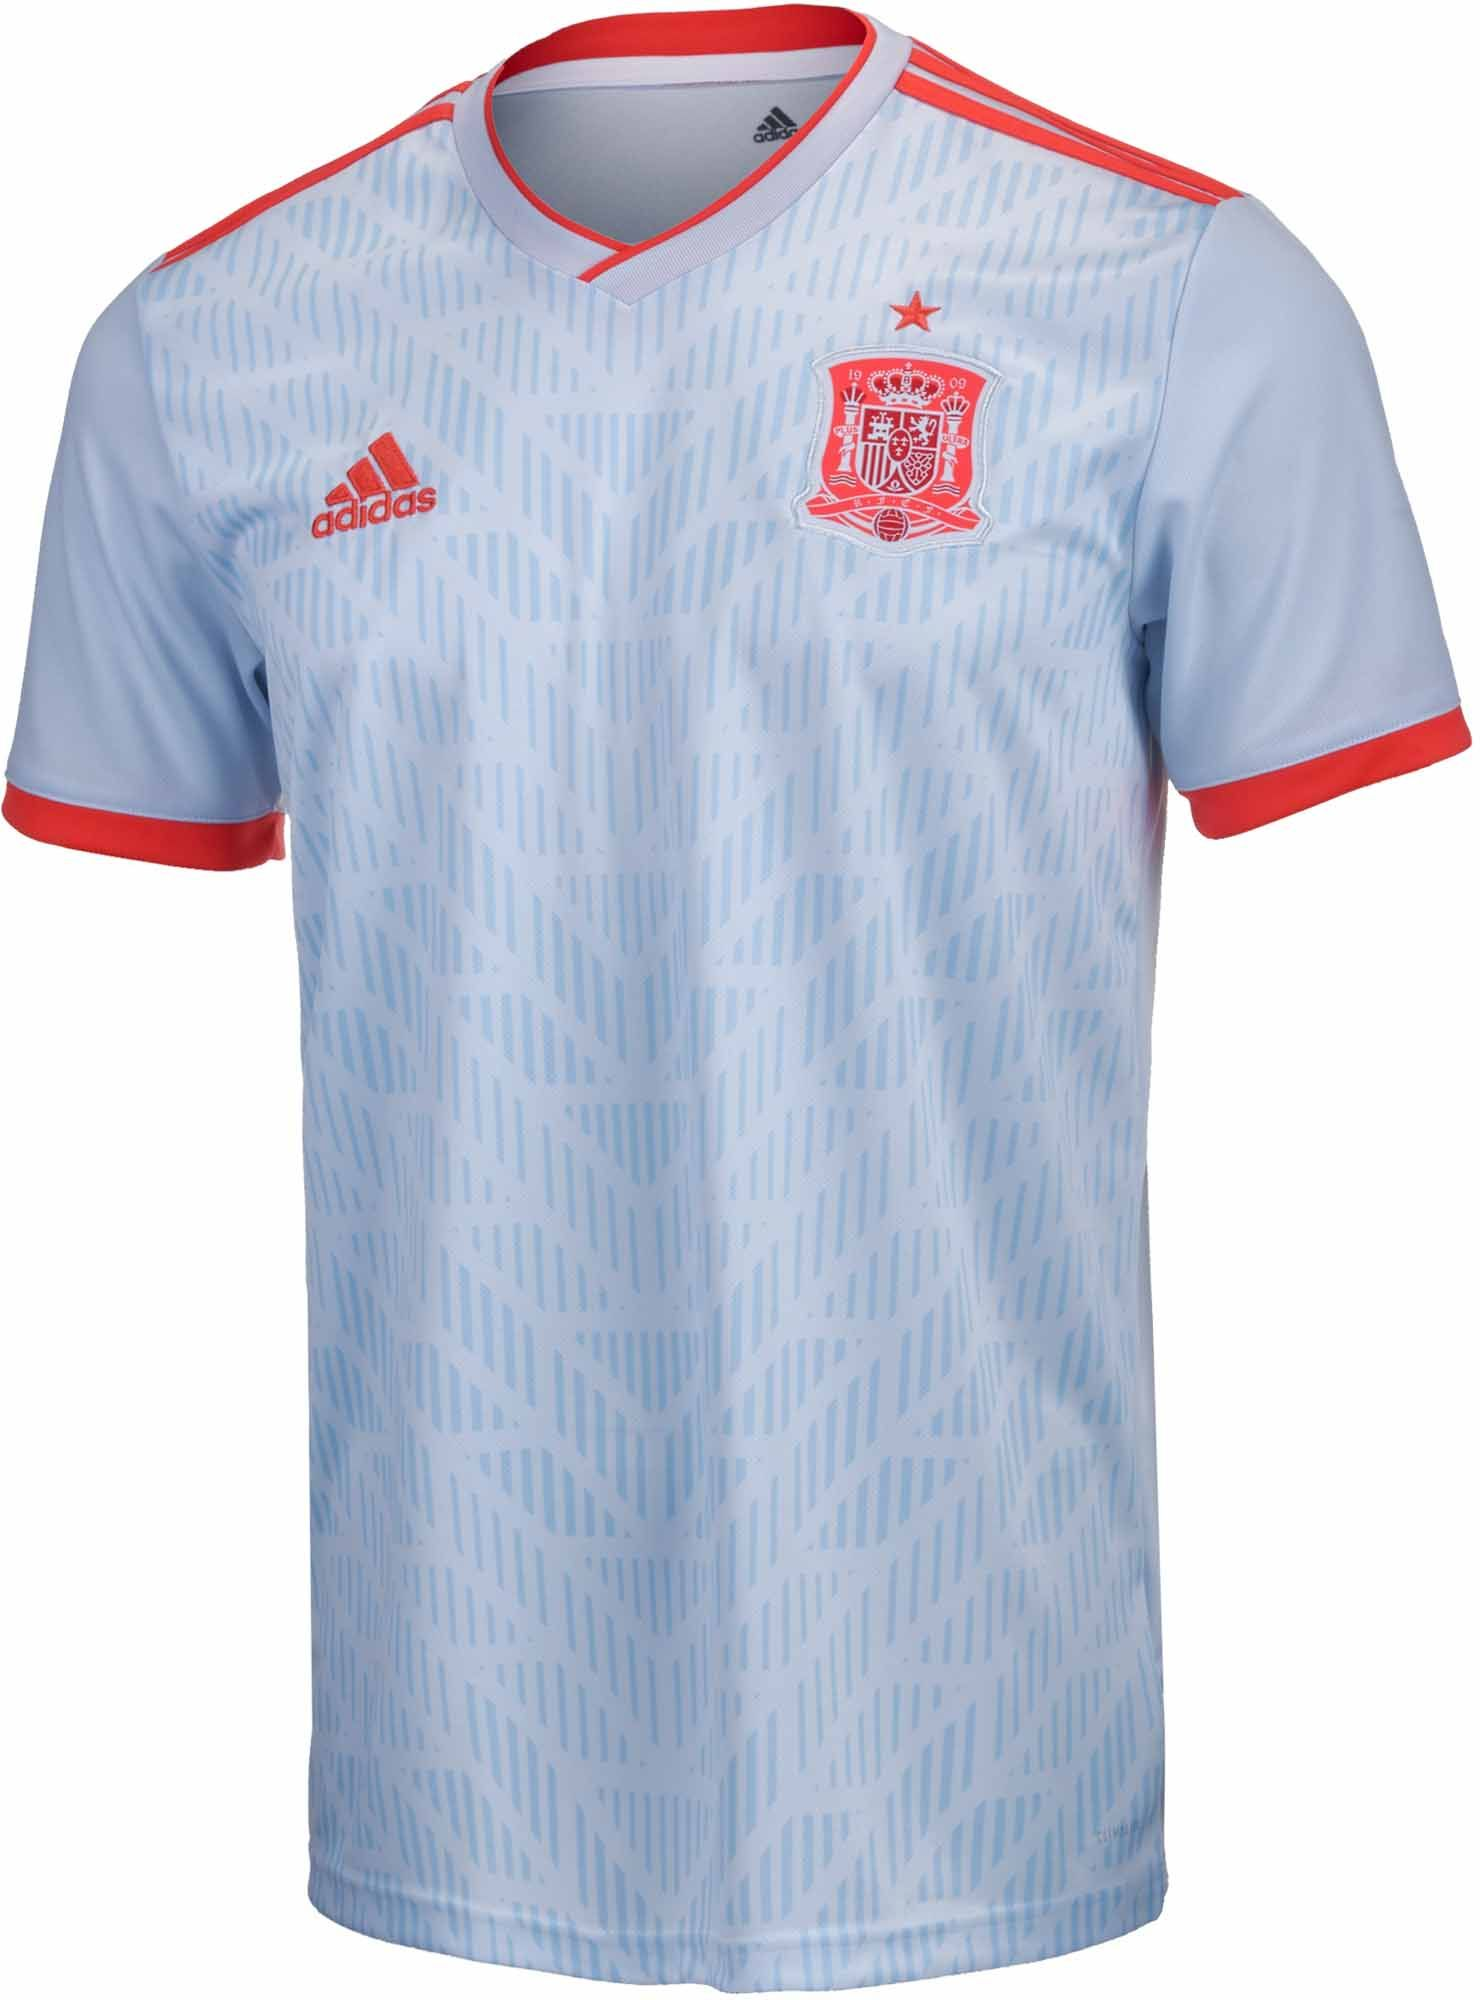 d33d1a0b3 Kids 2018 adidas Spain Away Jersey. Hot right now at SoccerPro.